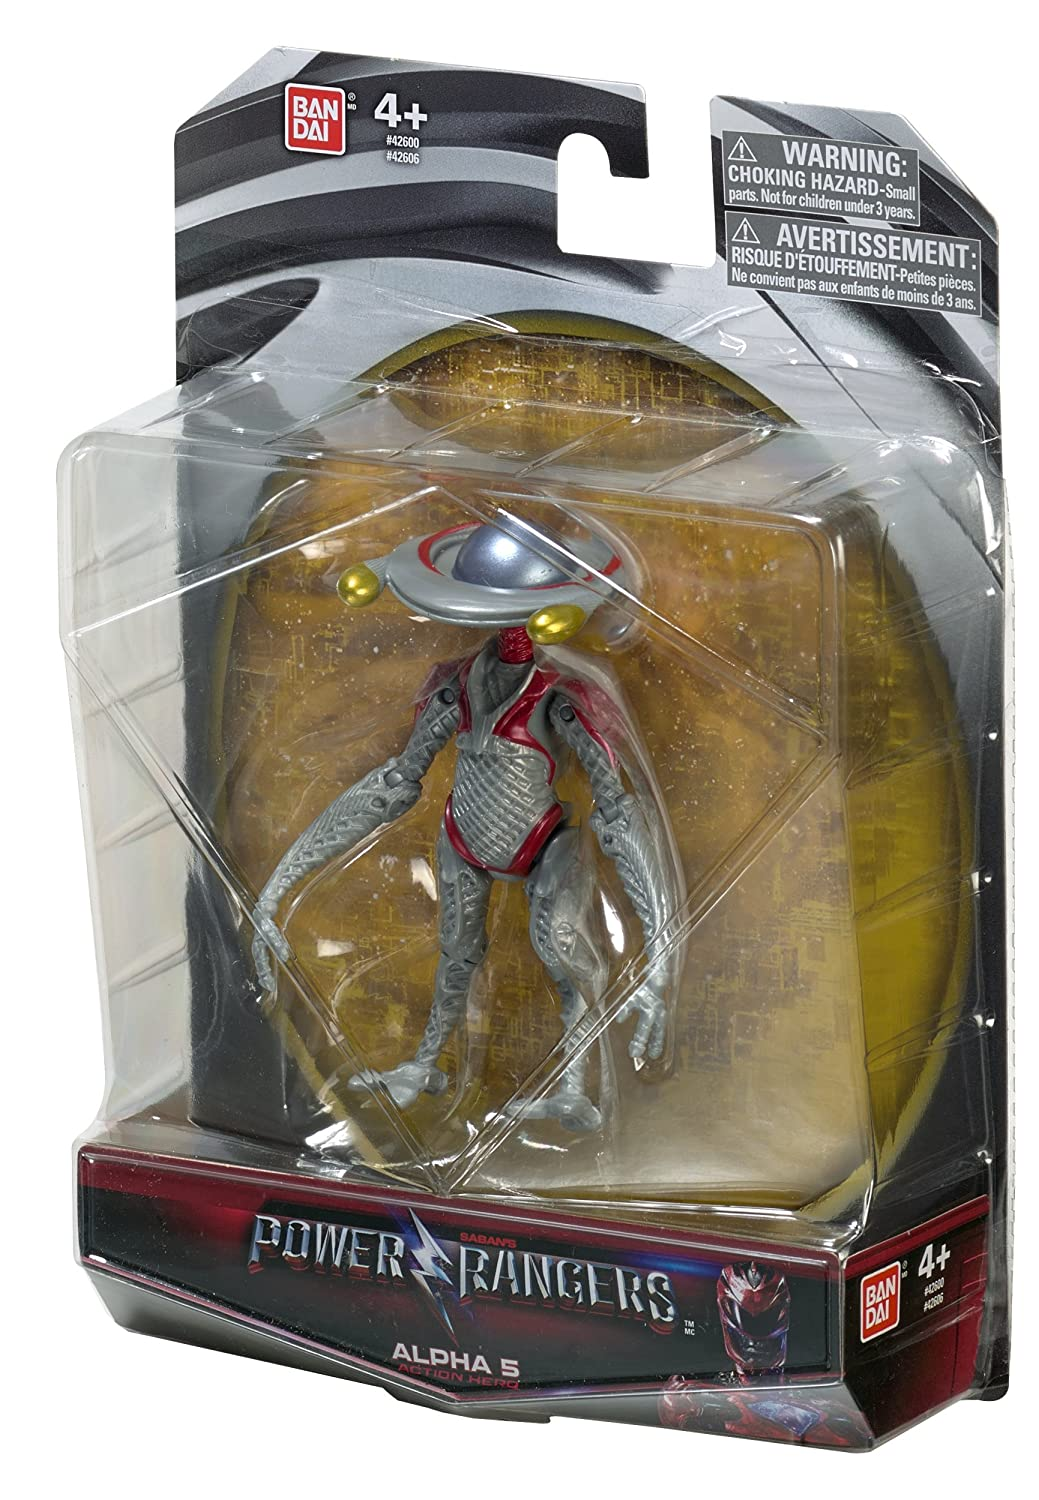 Power Rangers Mighty Morphin Movie 5-inch Pink Ranger Action Figure